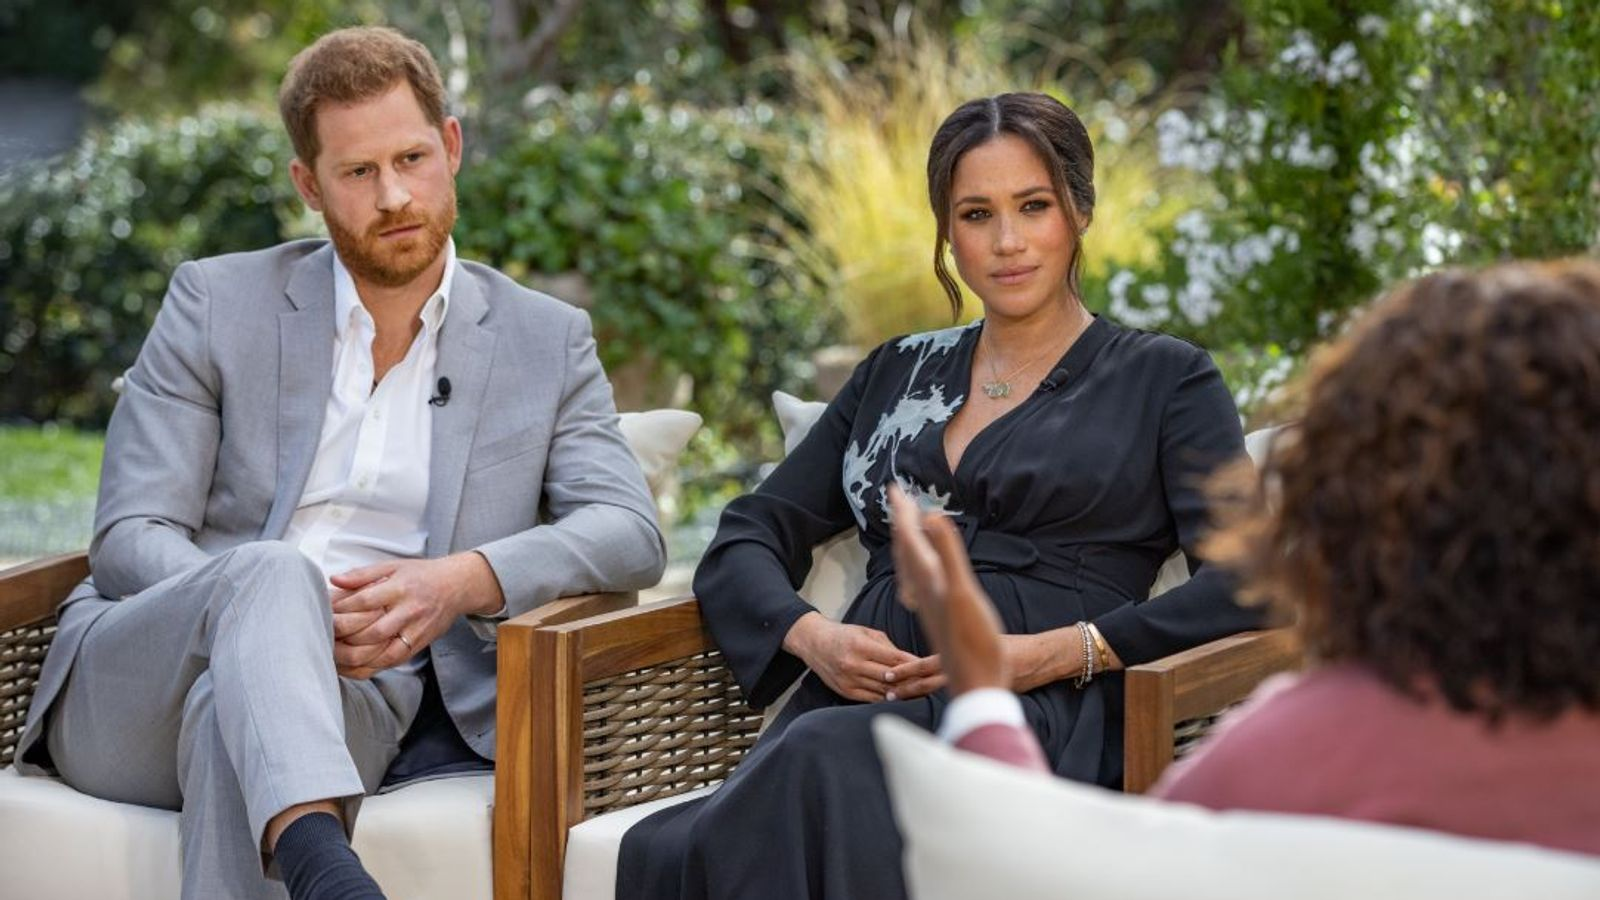 Harry and Meghan's Oprah interview wouldn't have aired if Prince Philip had died, friend says - Sky News